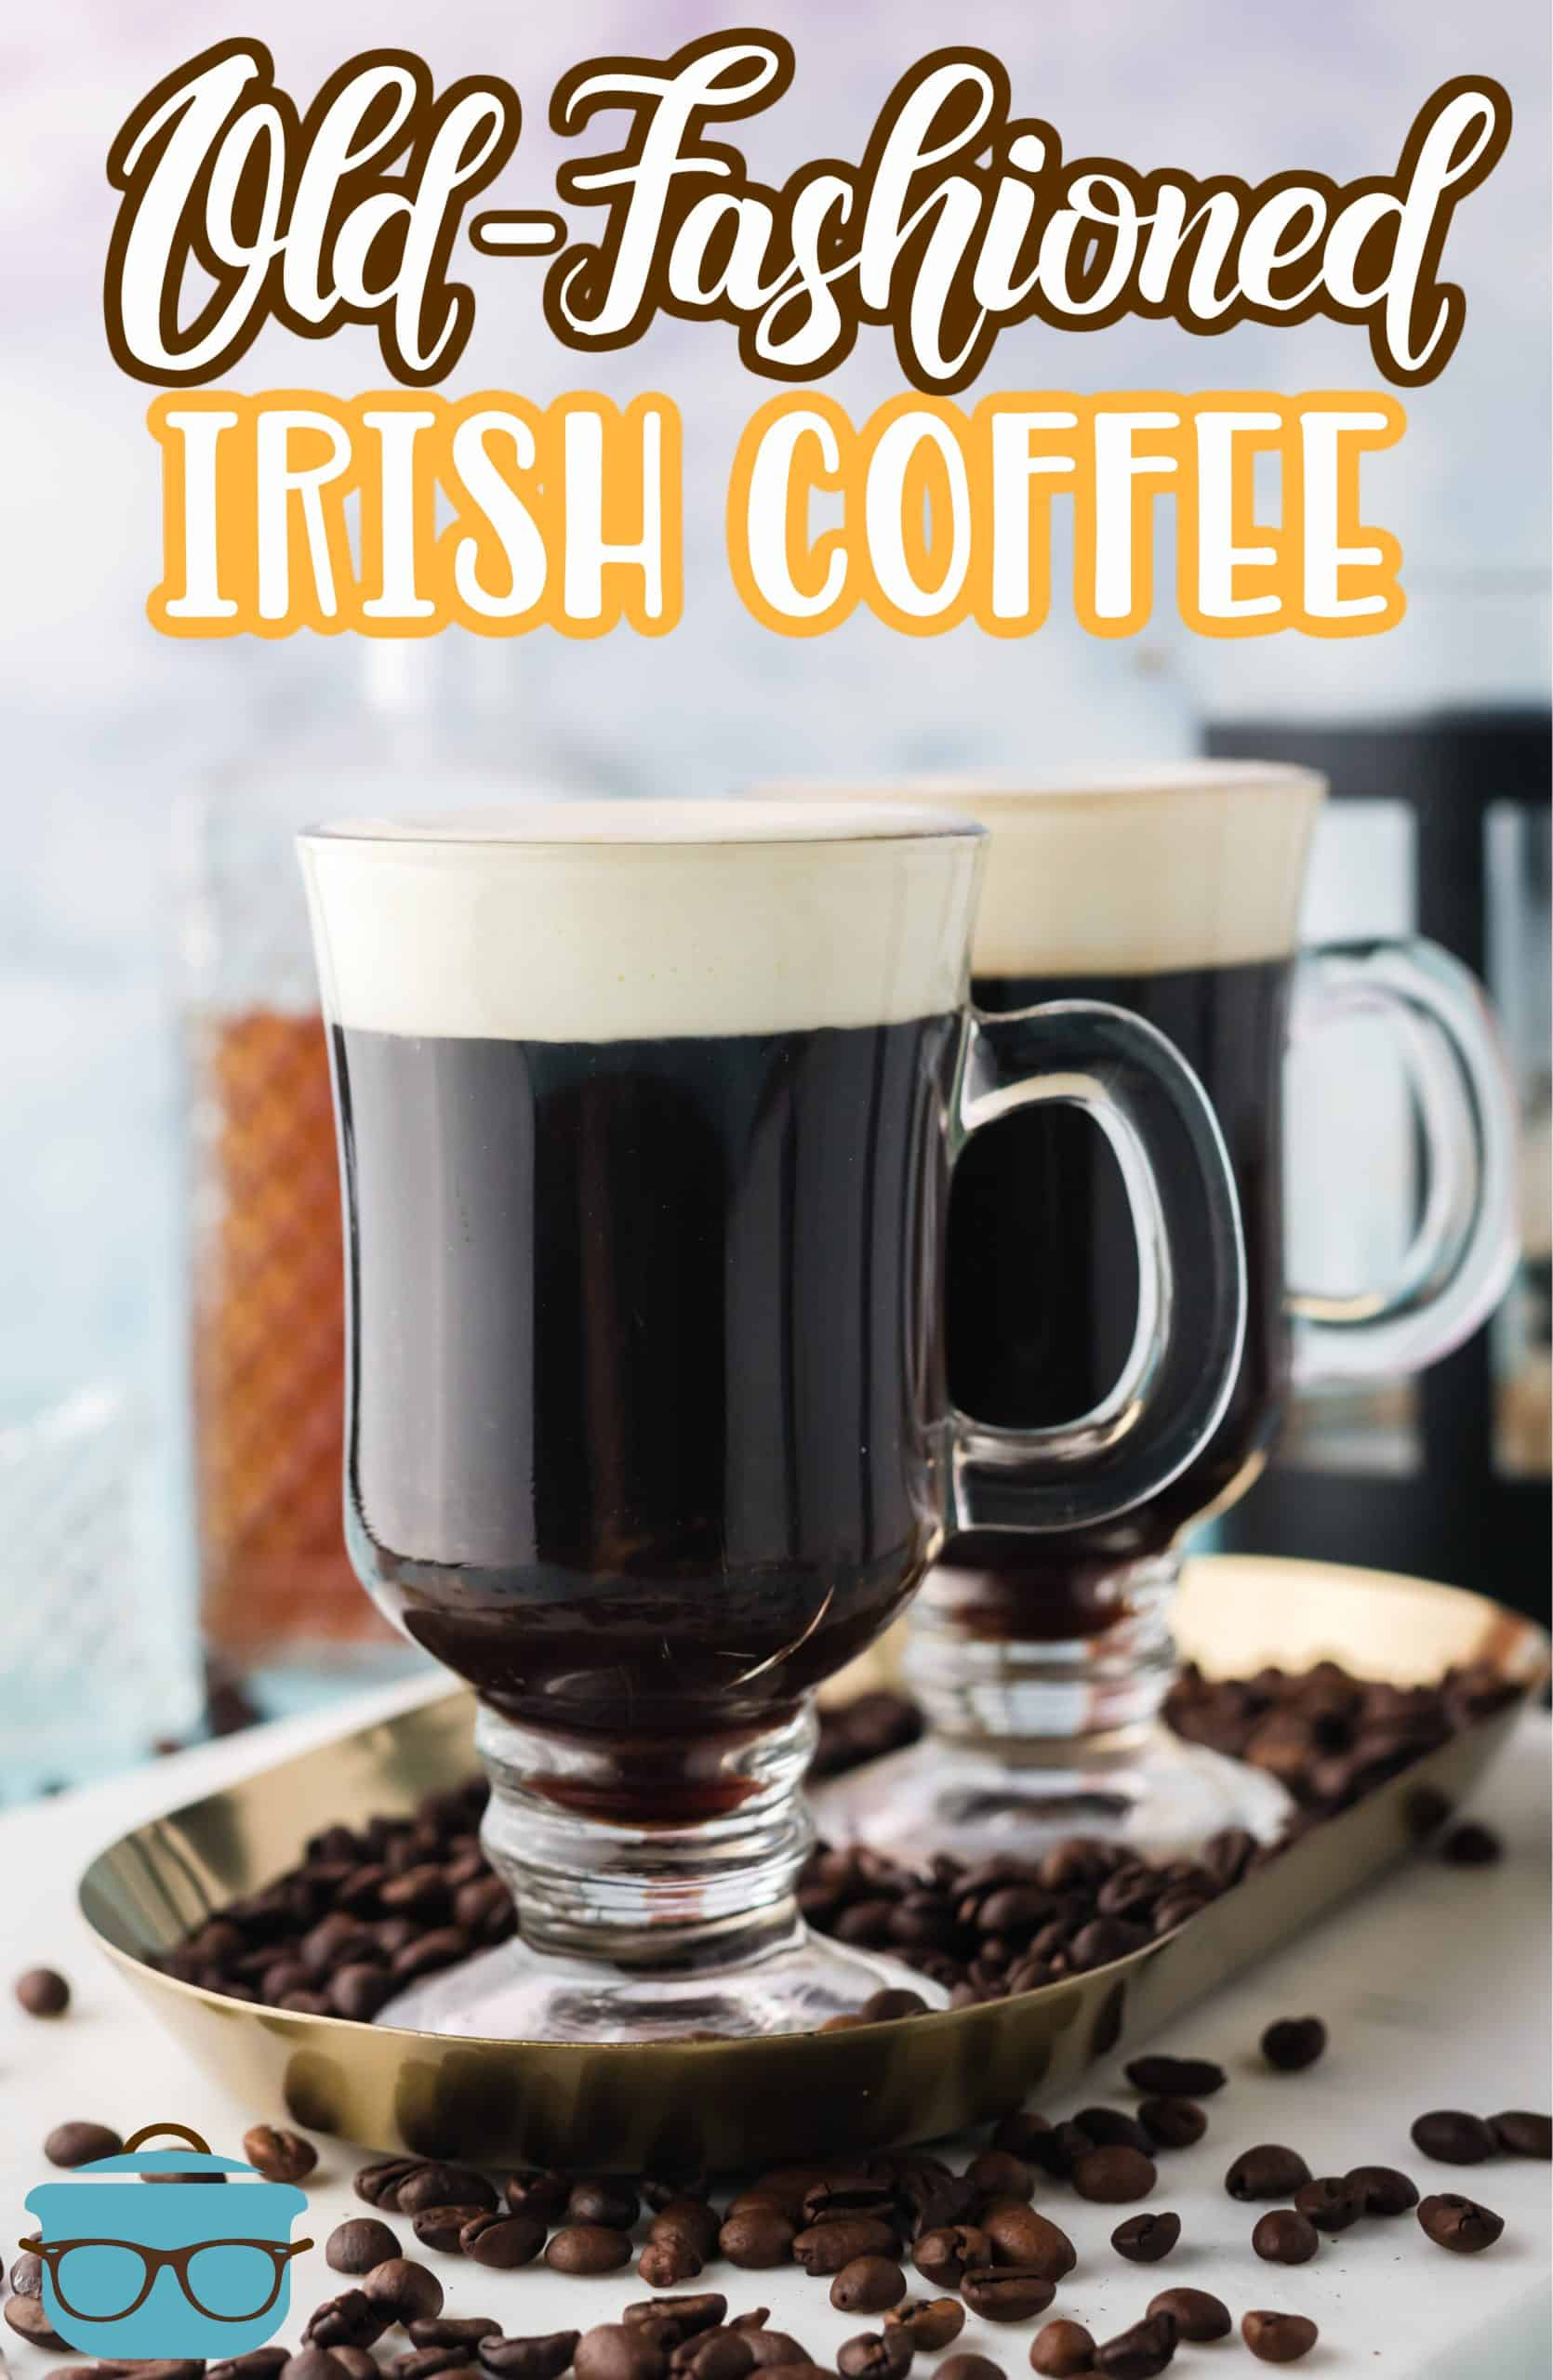 If you love spiked coffee drinks then you will adore this Old-Fashioned Irish Coffee. With minimal ingredients and time, this makes the perfect adult beverage recipe!